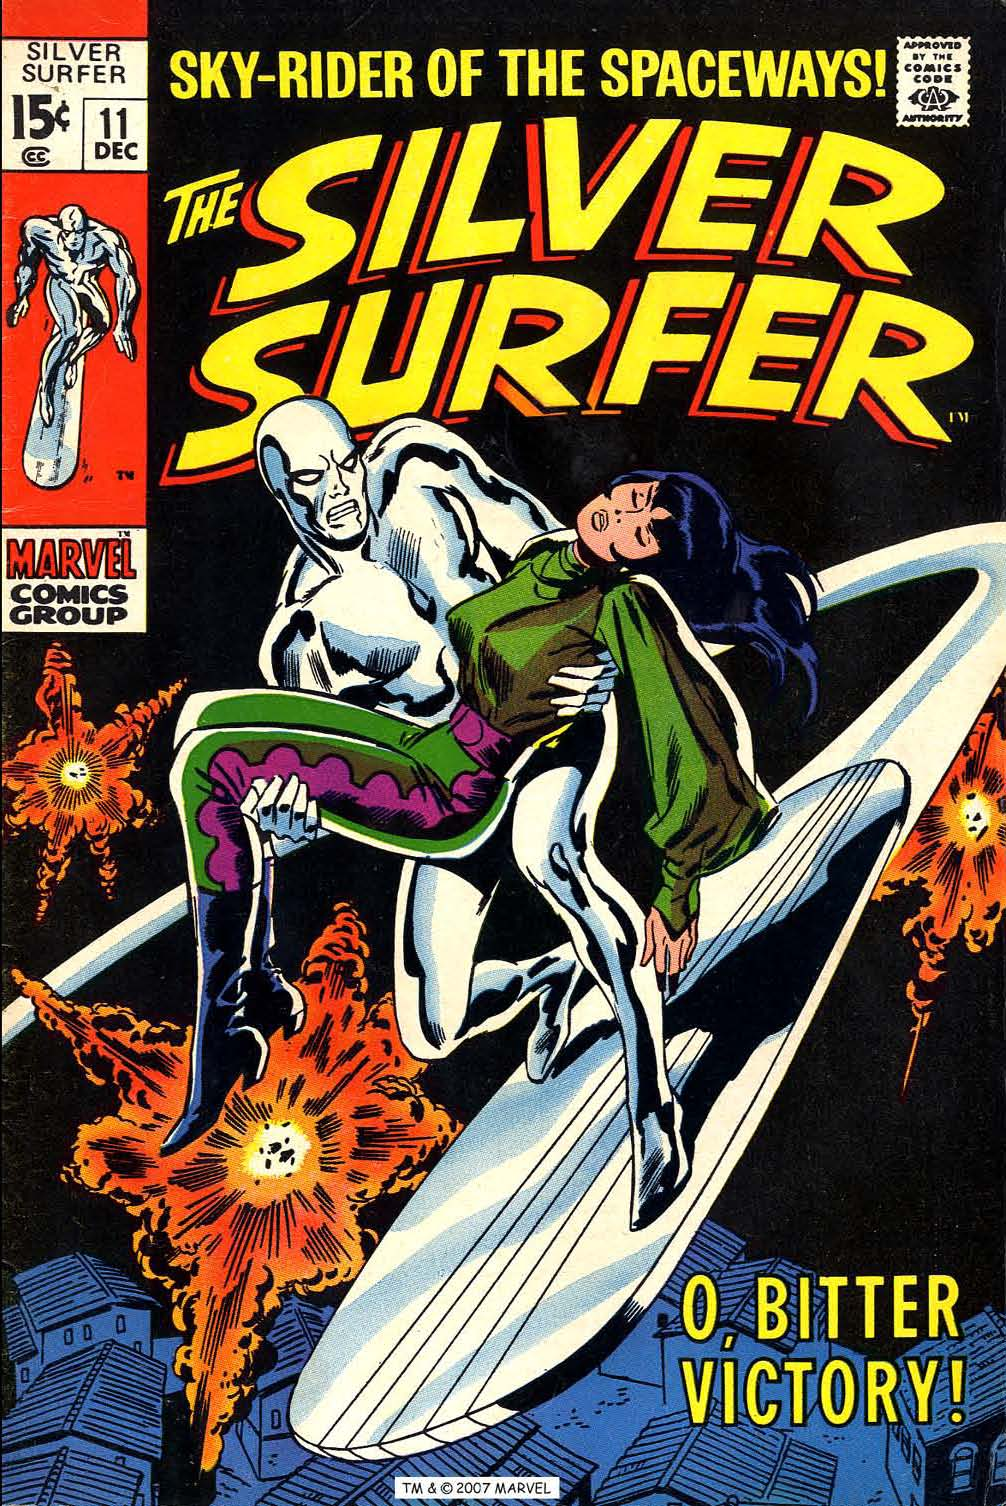 Read online Silver Surfer (1968) comic -  Issue #11 - 1